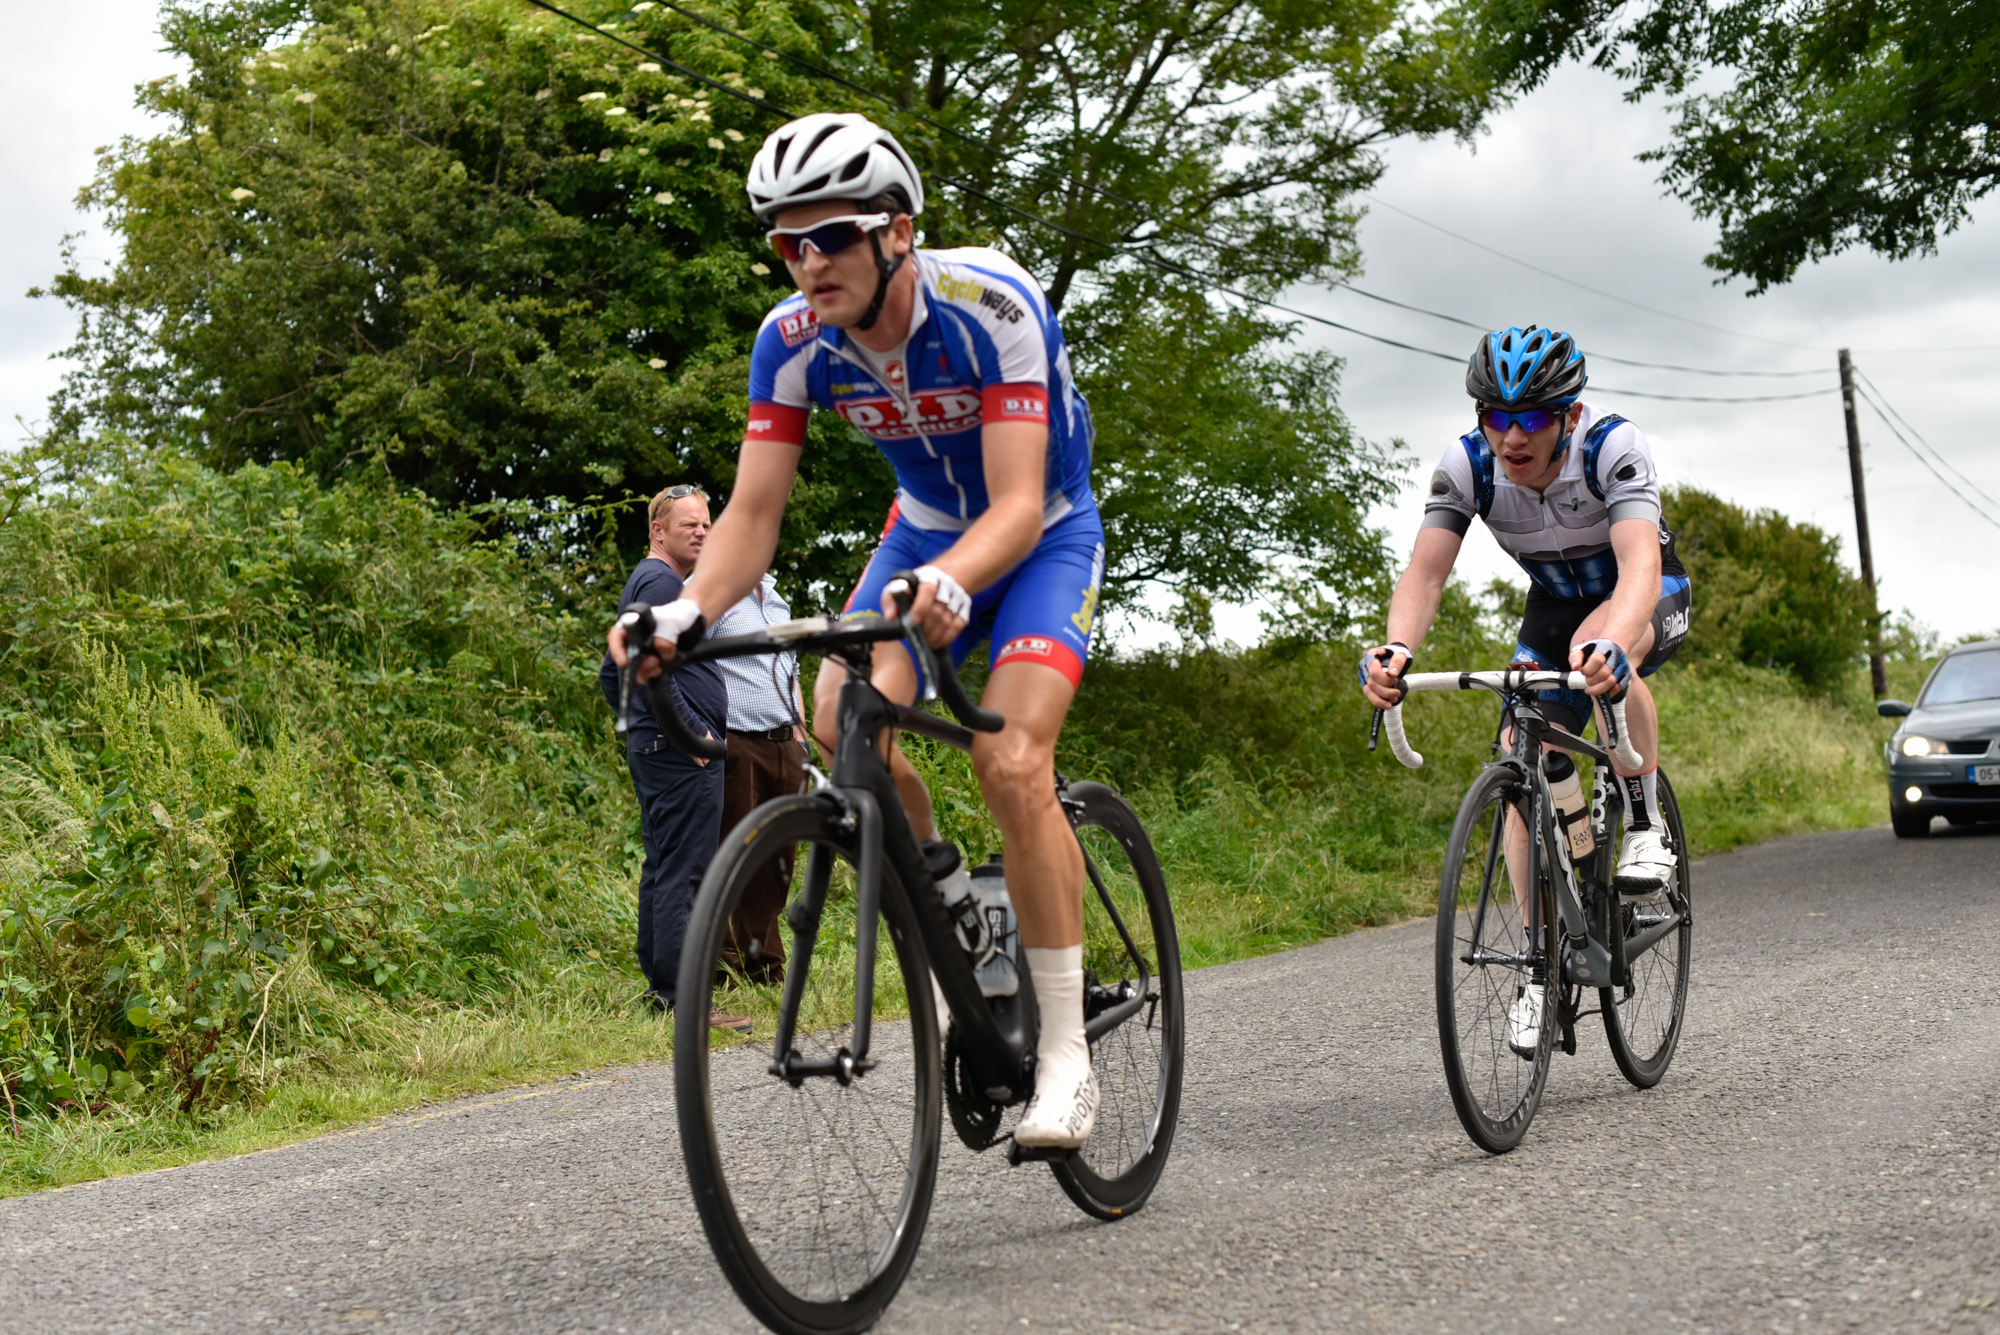 Mark Dowling and Daire Feely pushing out their lead